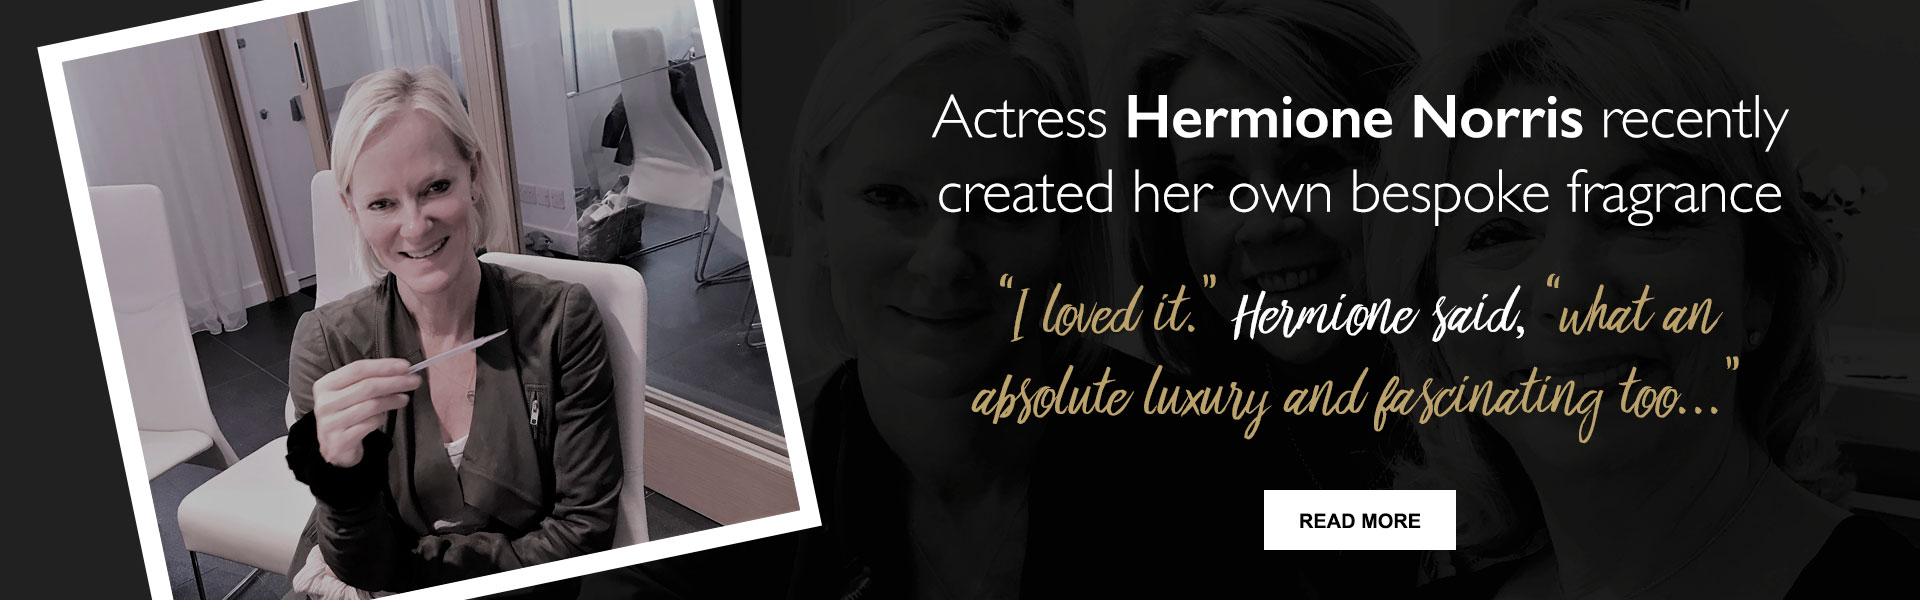 Actress Hermione Norris recently created her own bespoke fragrance